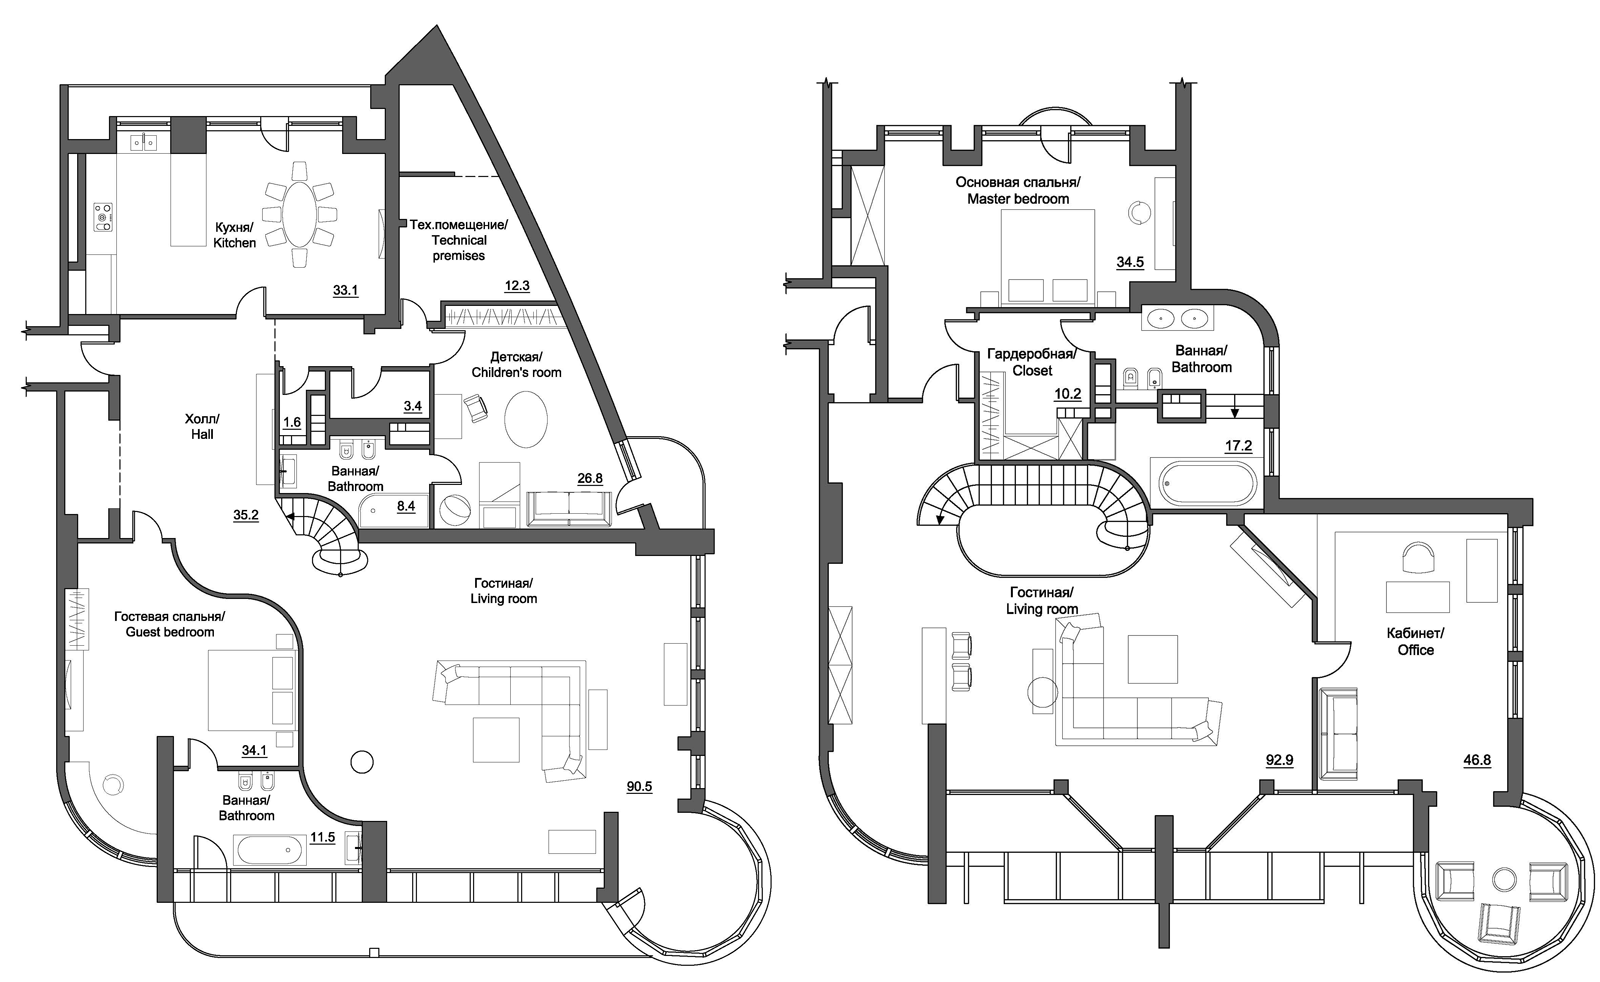 Luxury Floor Plans opulent ideas 5 luxury home designs and floor plans for worthy villa luxury floor plans resume Penthouses For Sale Floor Plans Penthouse Apartment Floor Plans Luxury Apartments For Sale In Kiev